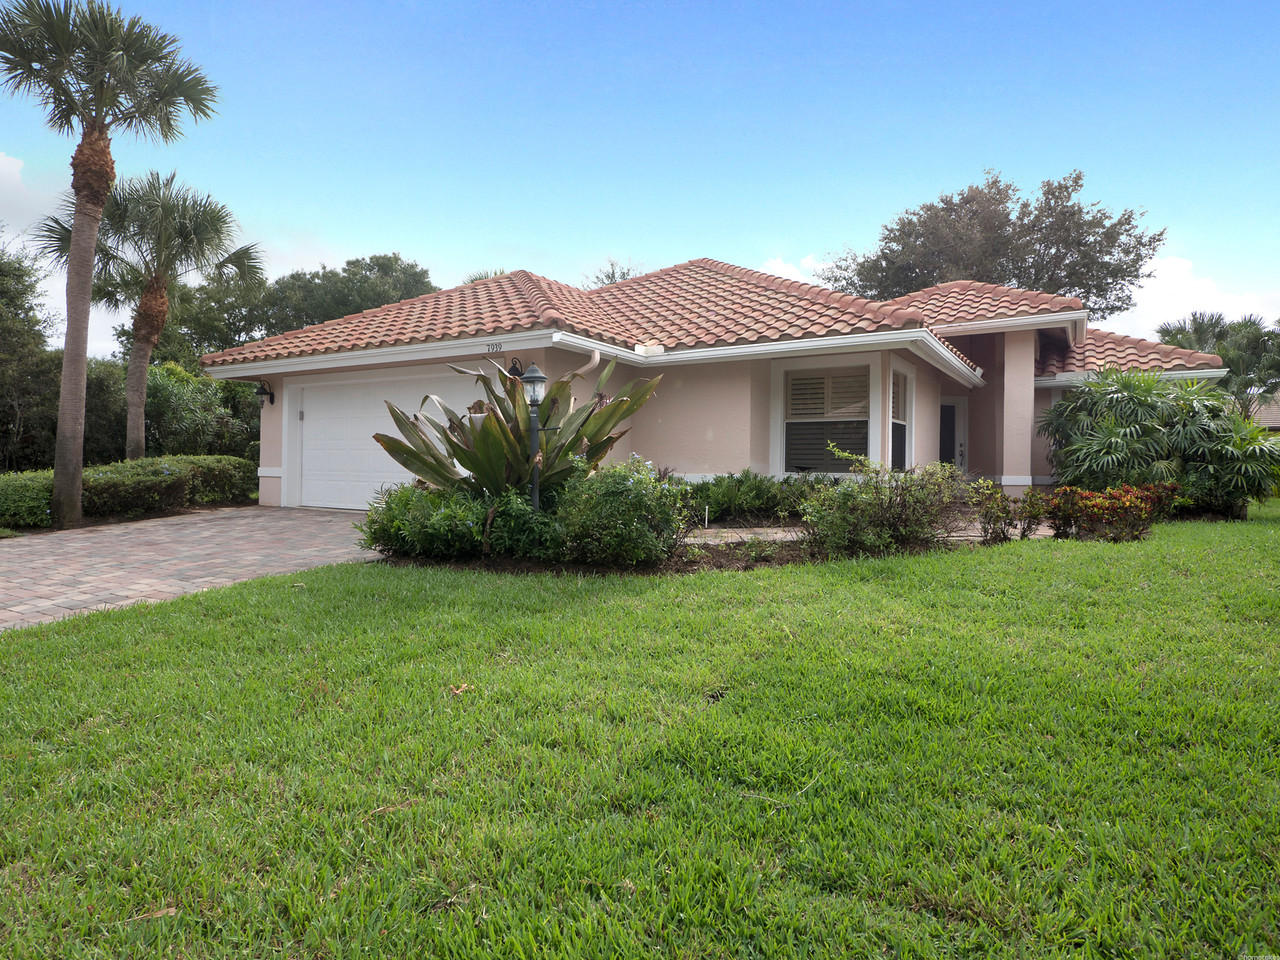 Home for sale in Hobe Sound Golf Club Hobe Sound Florida